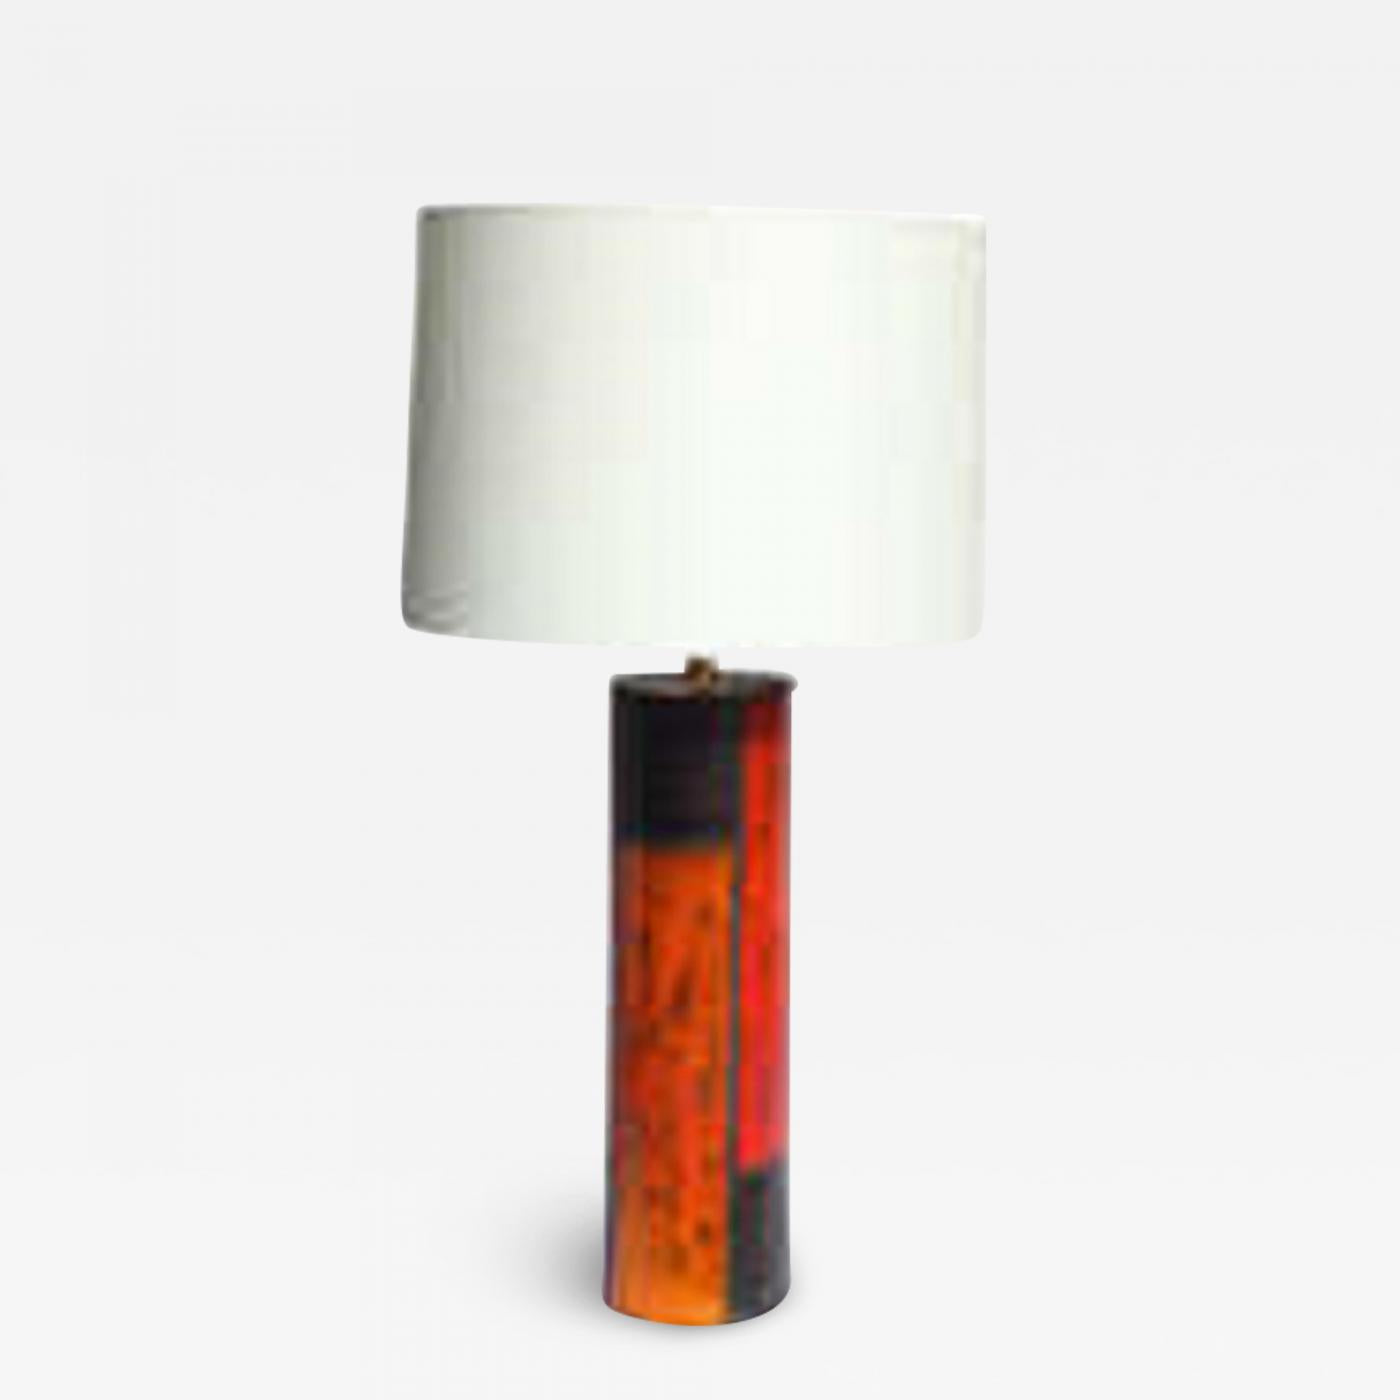 Aldo Londi (Attributed) Aldo Londi Table Lamp Mid Century Modern Ceramic Mondrian line Italy 1959